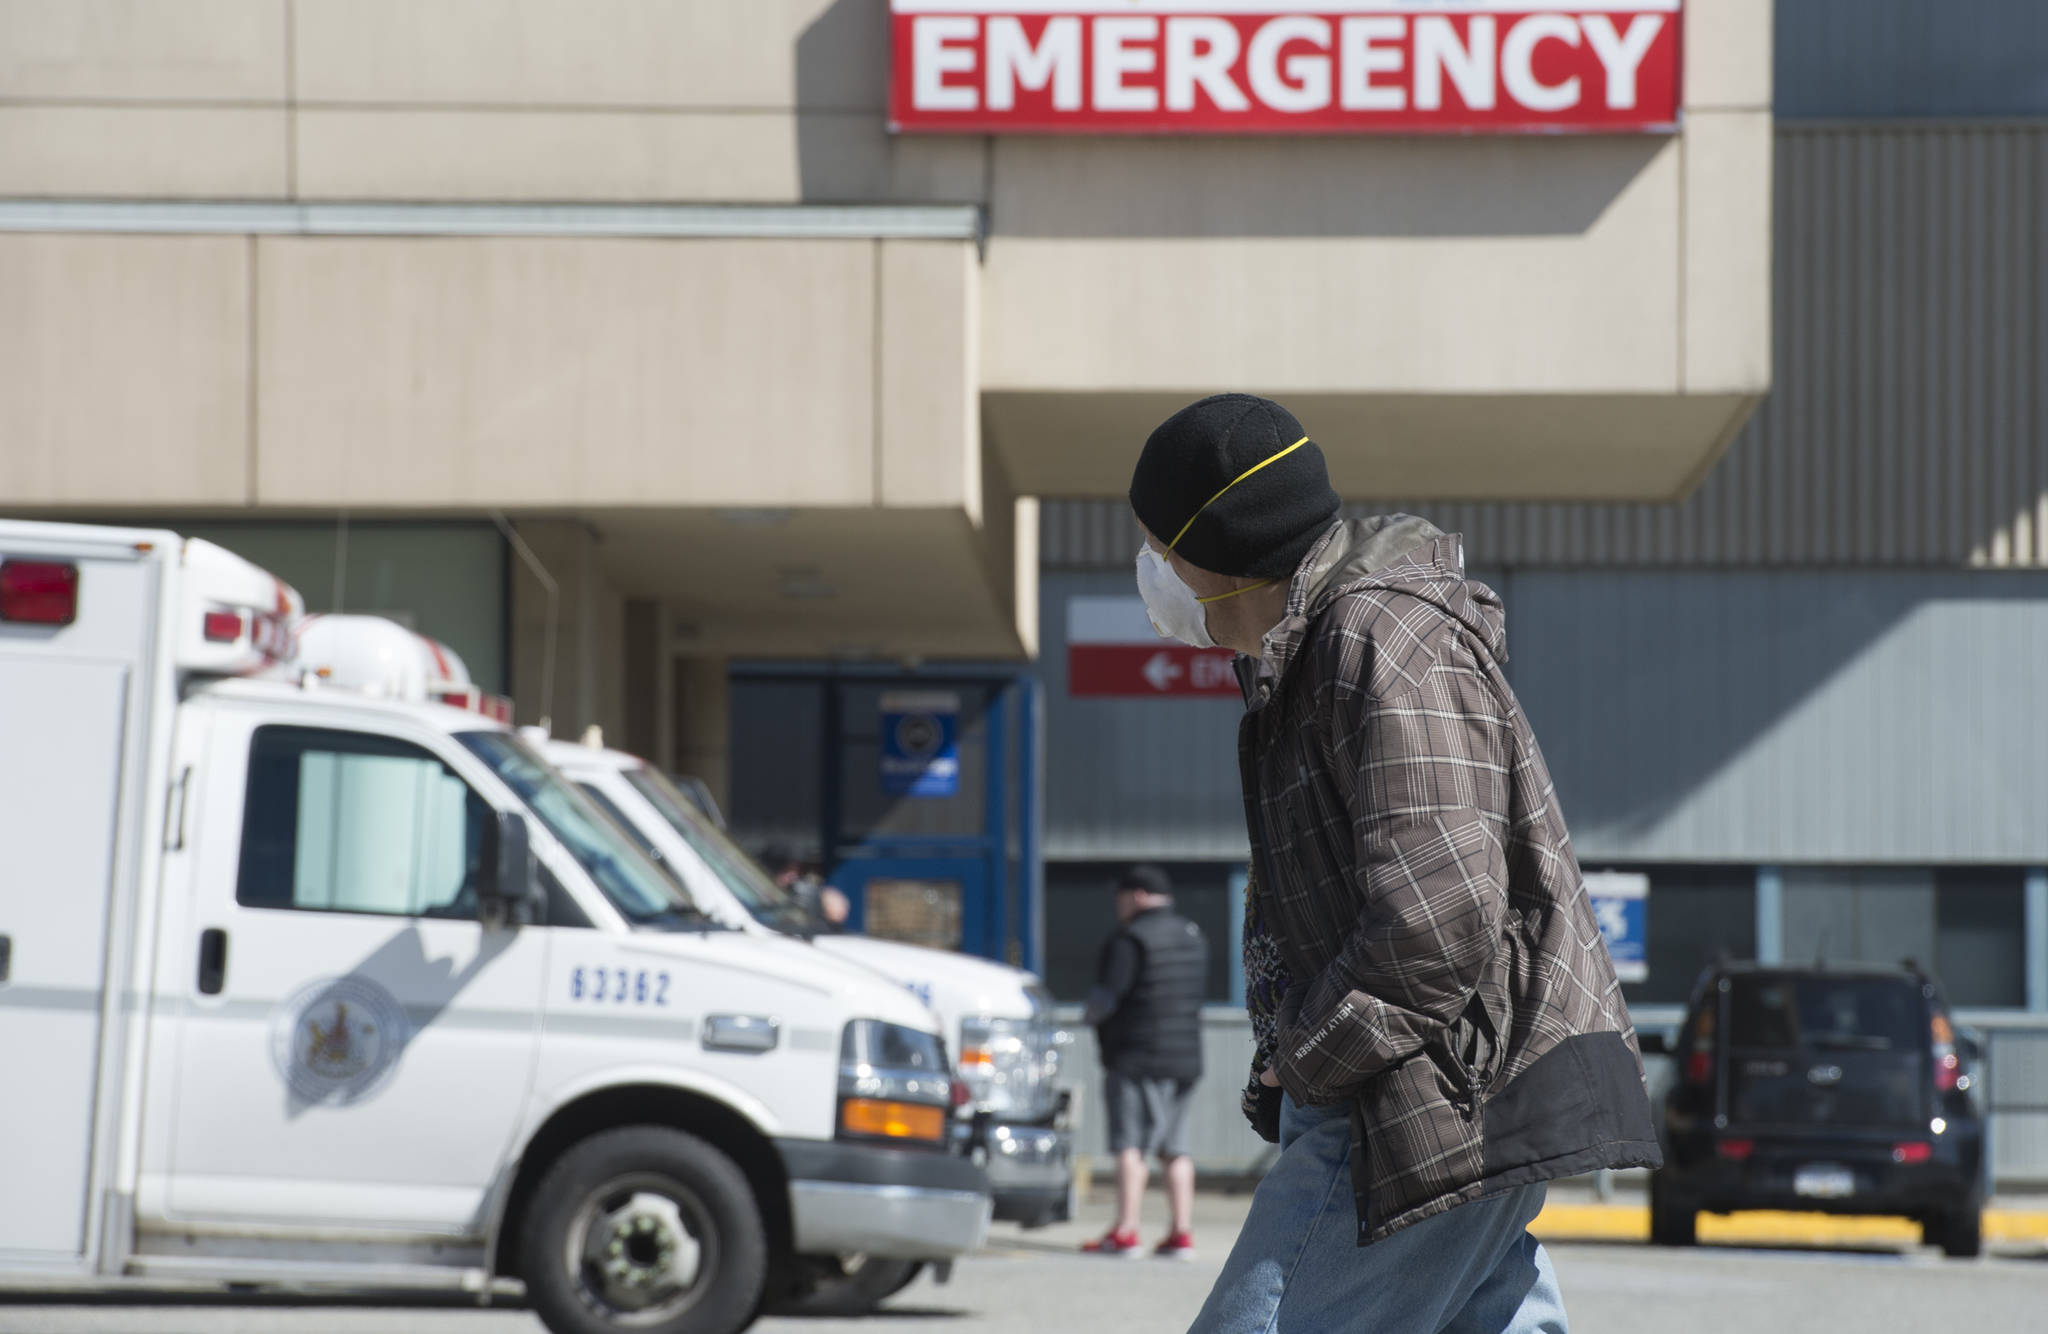 A man wears a protective face mask as he walks past the emergency department of the Royal Columbian Hospital in New Westminster, B.C. Friday, April 3, 2020. New data finds emergency department visits dropped by 25 per cent in the early days of the COVID-19 pandemic. THE CANADIAN PRESS/Jonathan Hayward